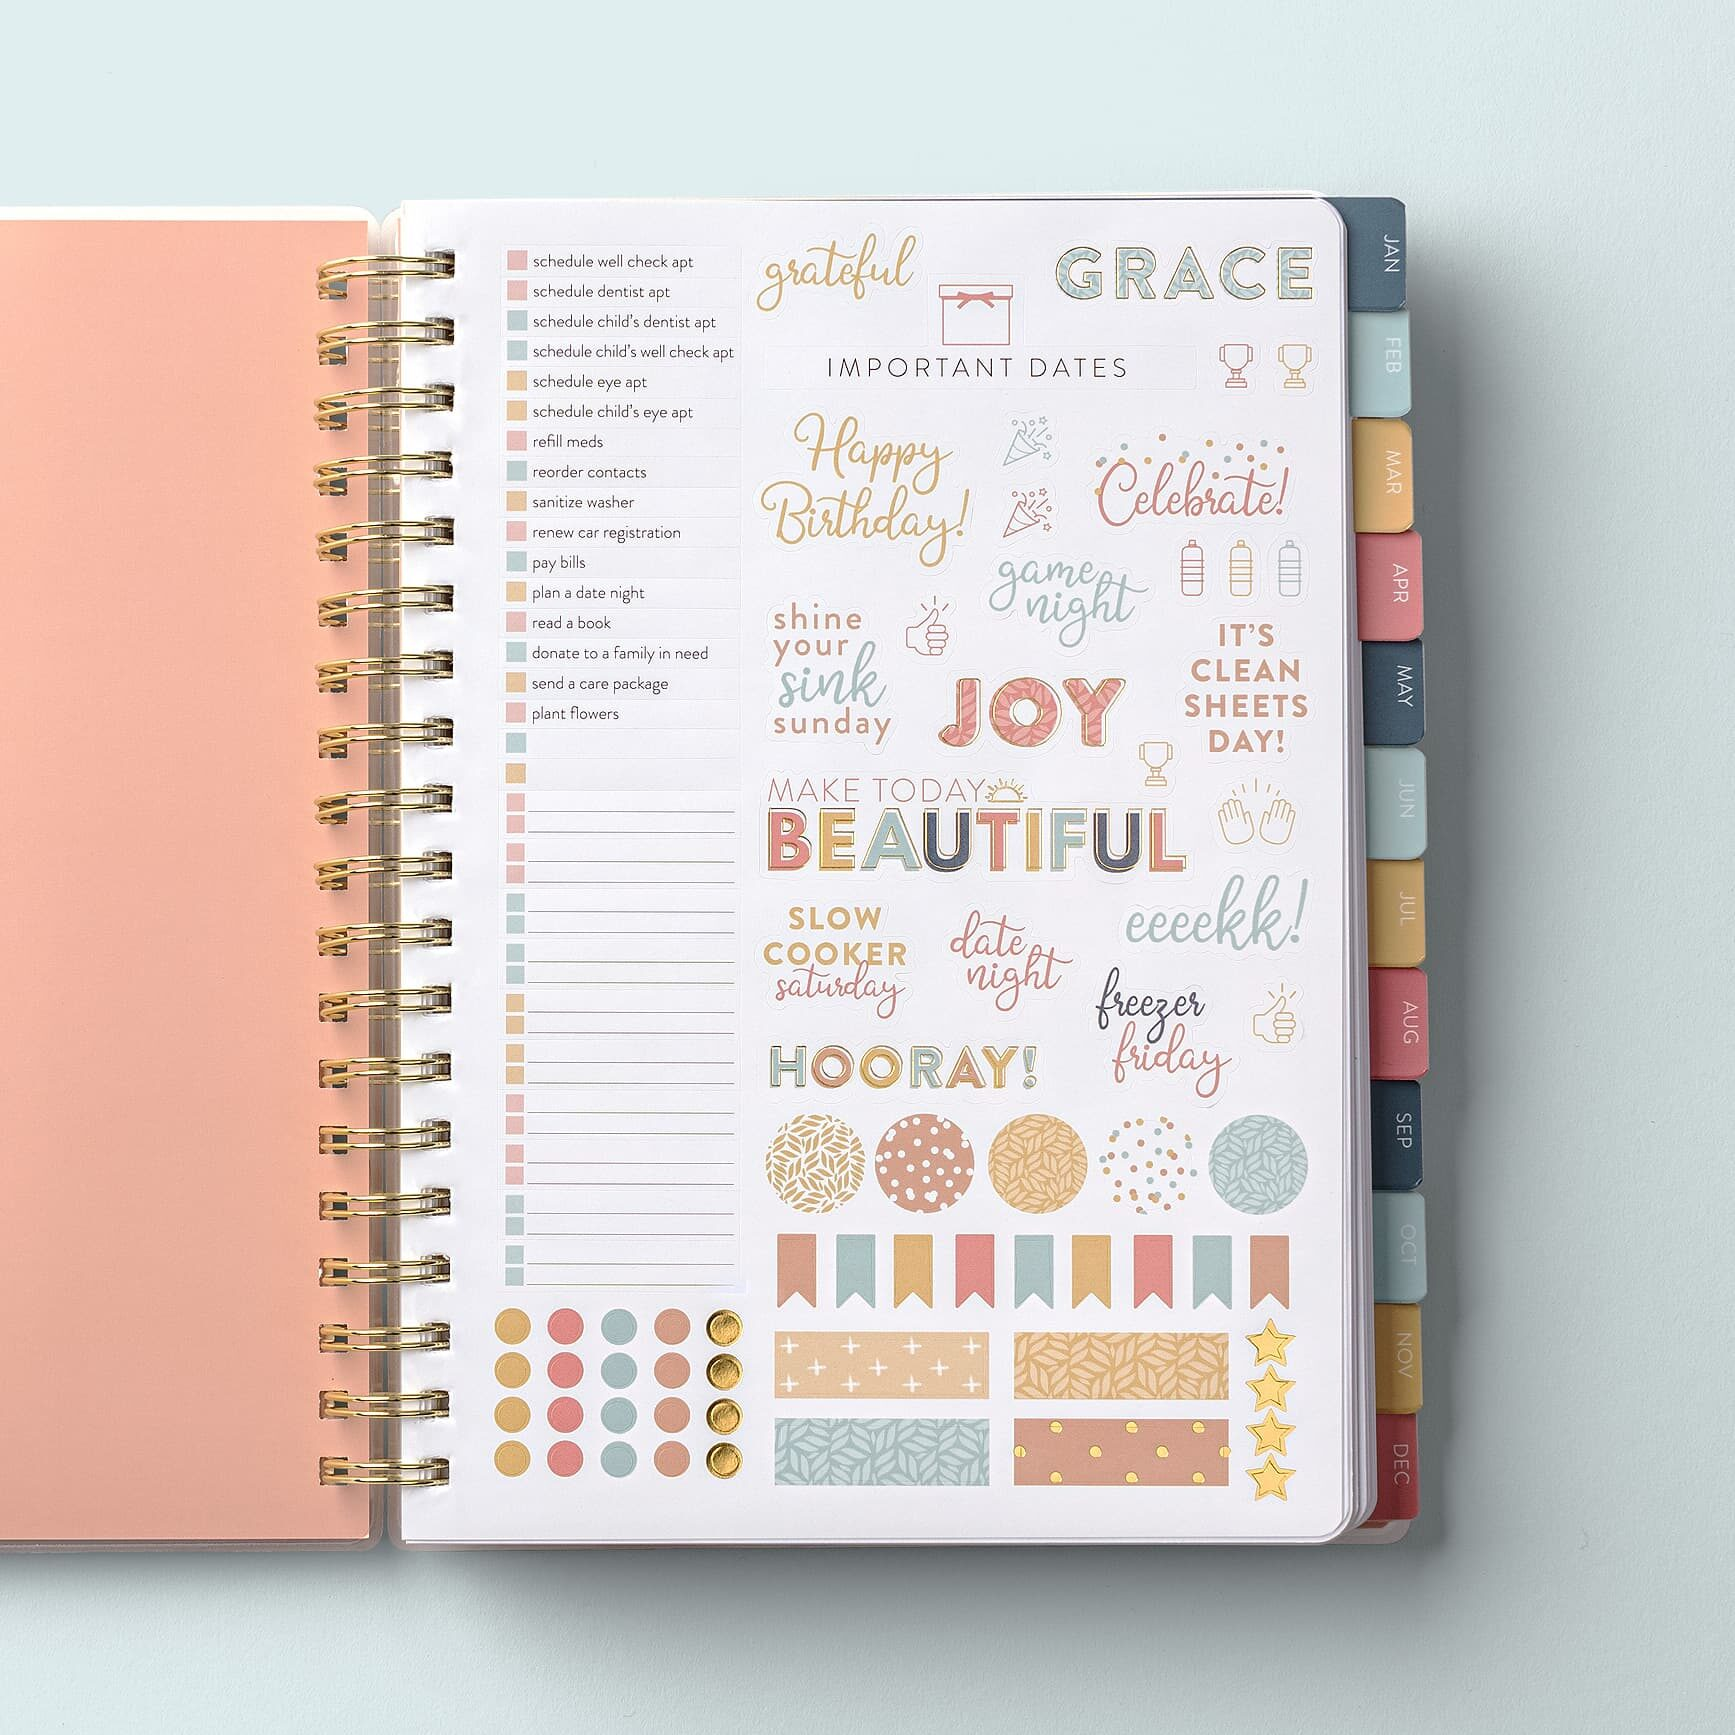 2022 Home Planner Pink Cover Sticker Page